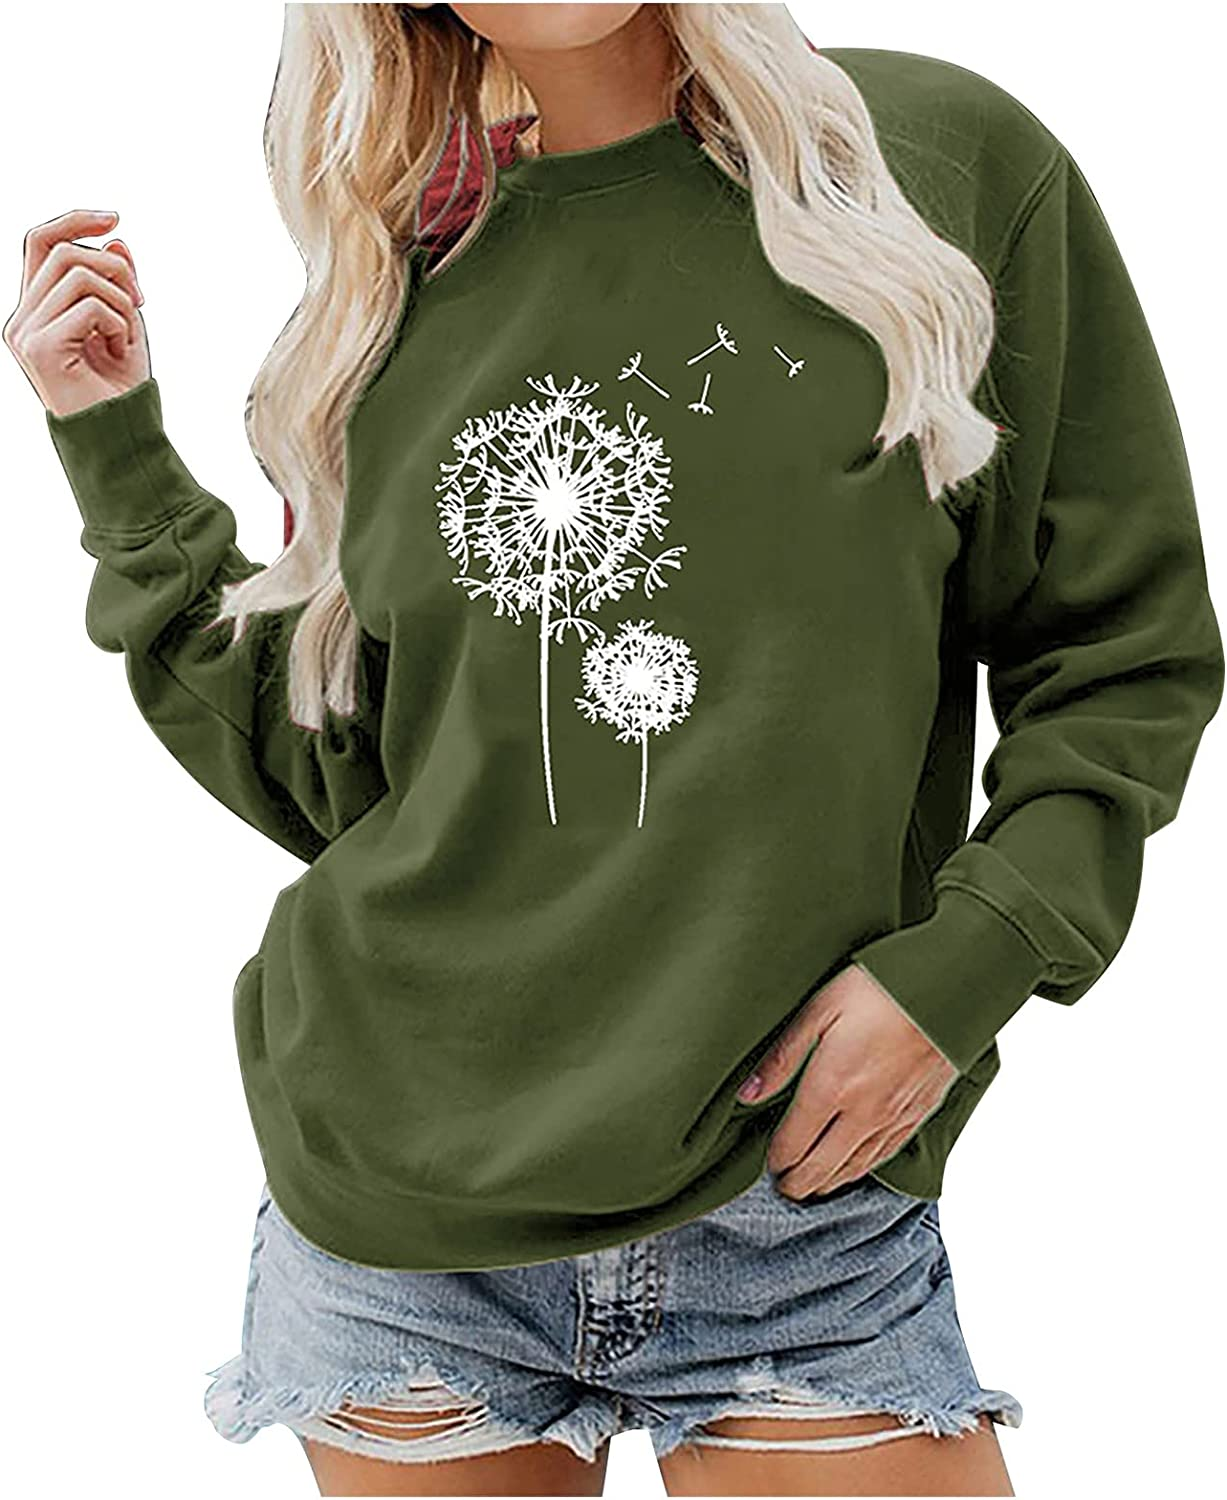 Women Casual Max 80% OFF Relaxed Sweatshirt Tops Printed Long Neck Special price for a limited time Sle Round